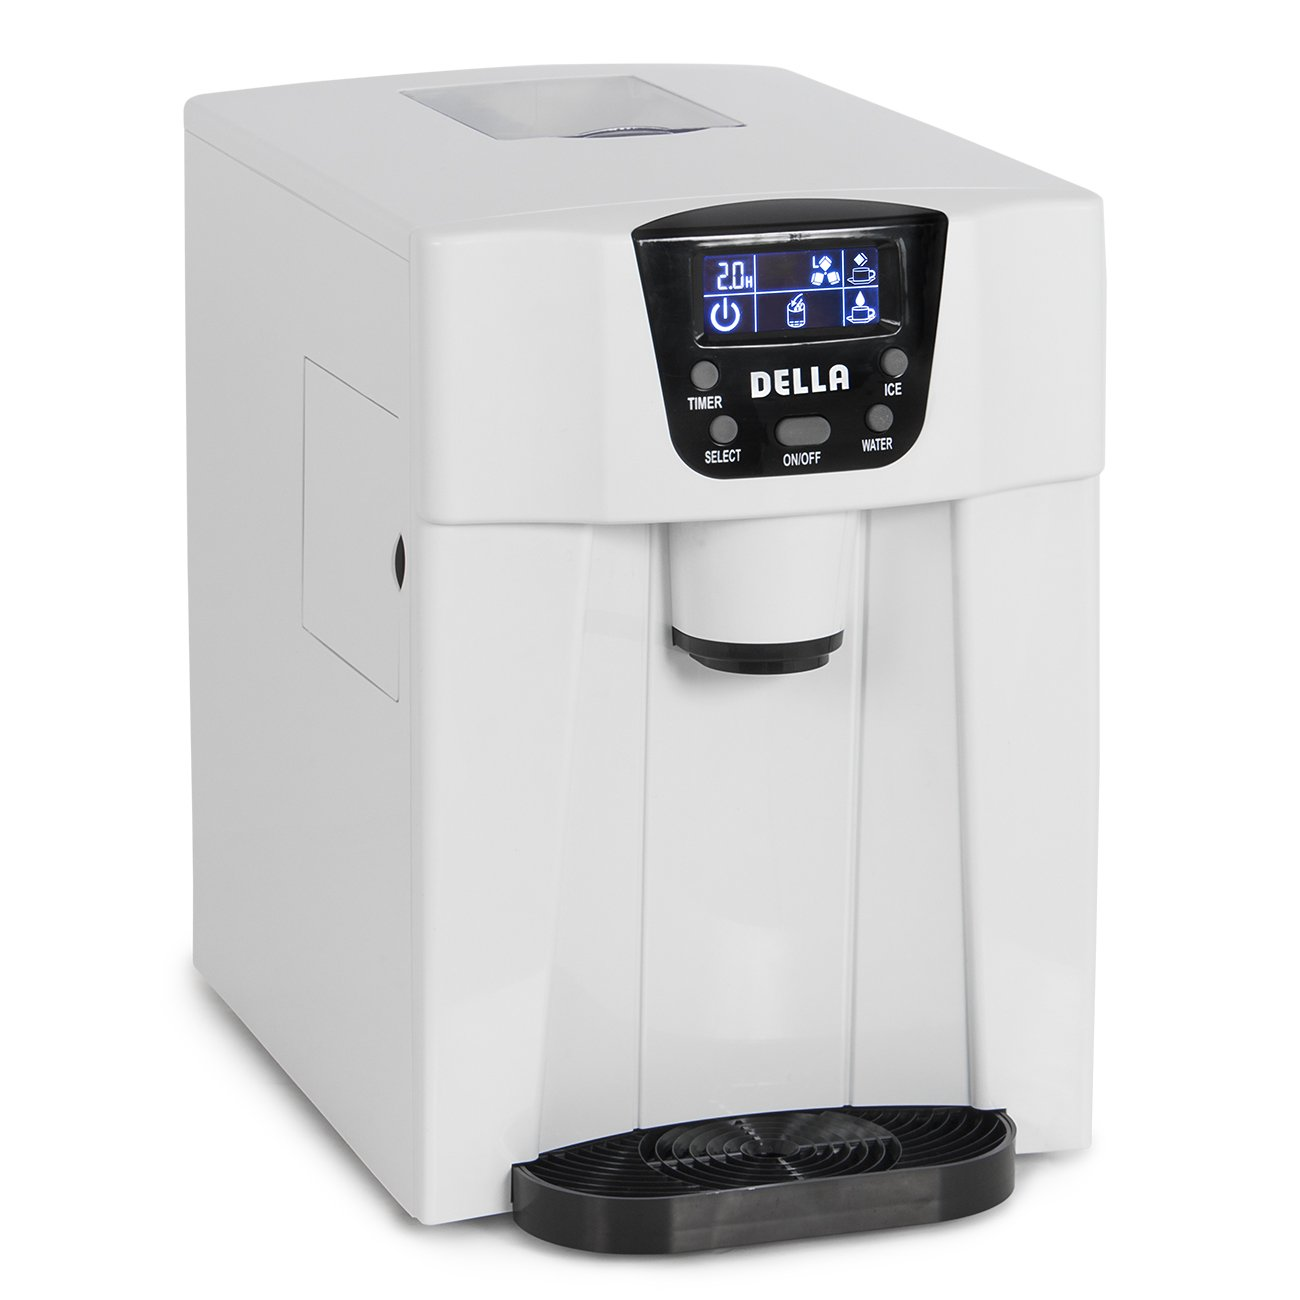 Della Freestanding Water Dispenser with Built-In Ice Maker Machine 26lbs per day, 2-Size Cube, White RGE Motor Direct Inc. 048-GM-48294